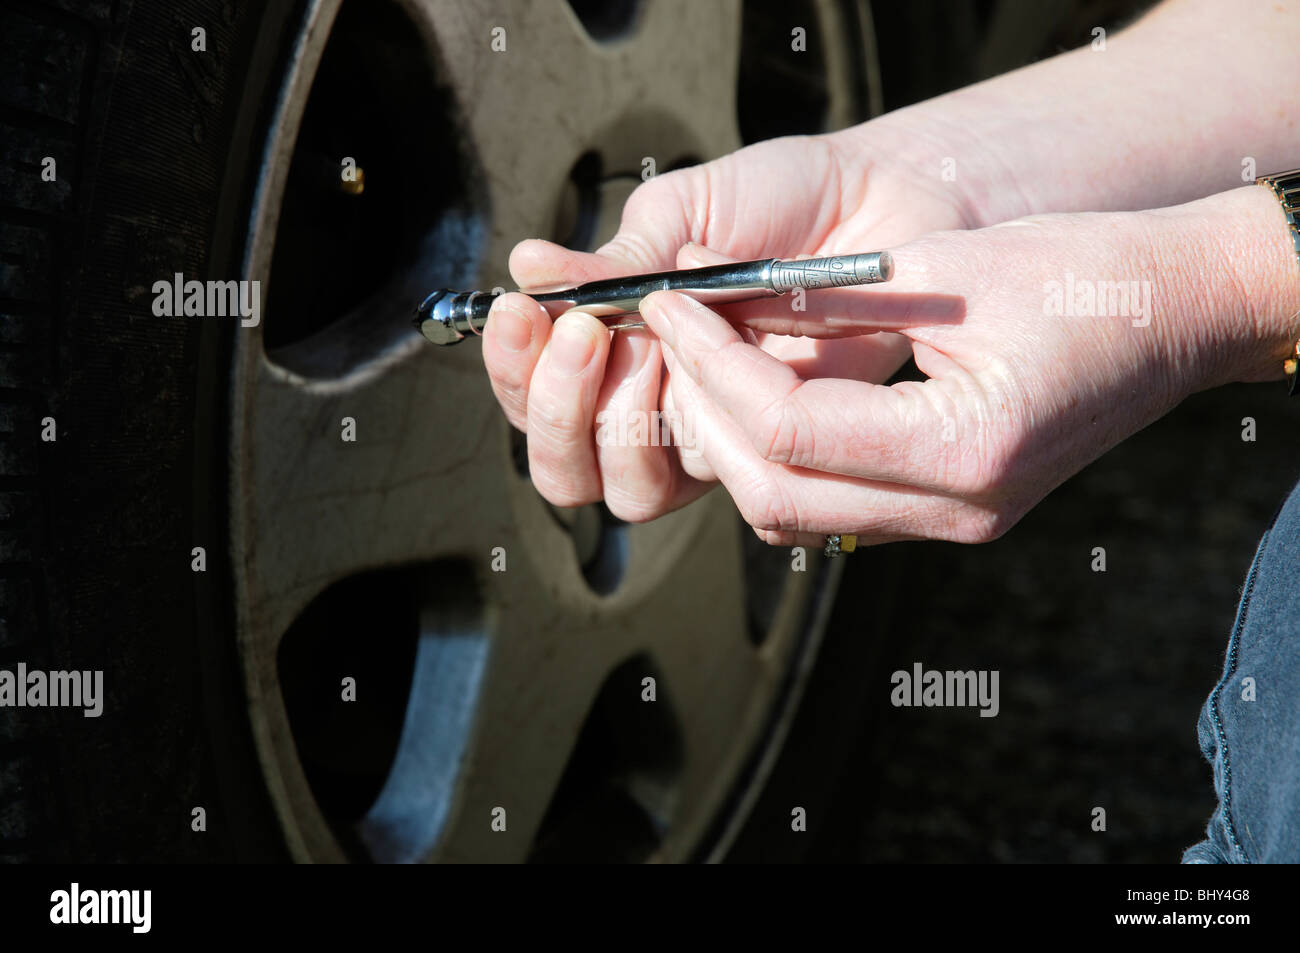 Woman car driver holding a tyre pressure gauge for checking the vehicle's tyres & pressures - Stock Image